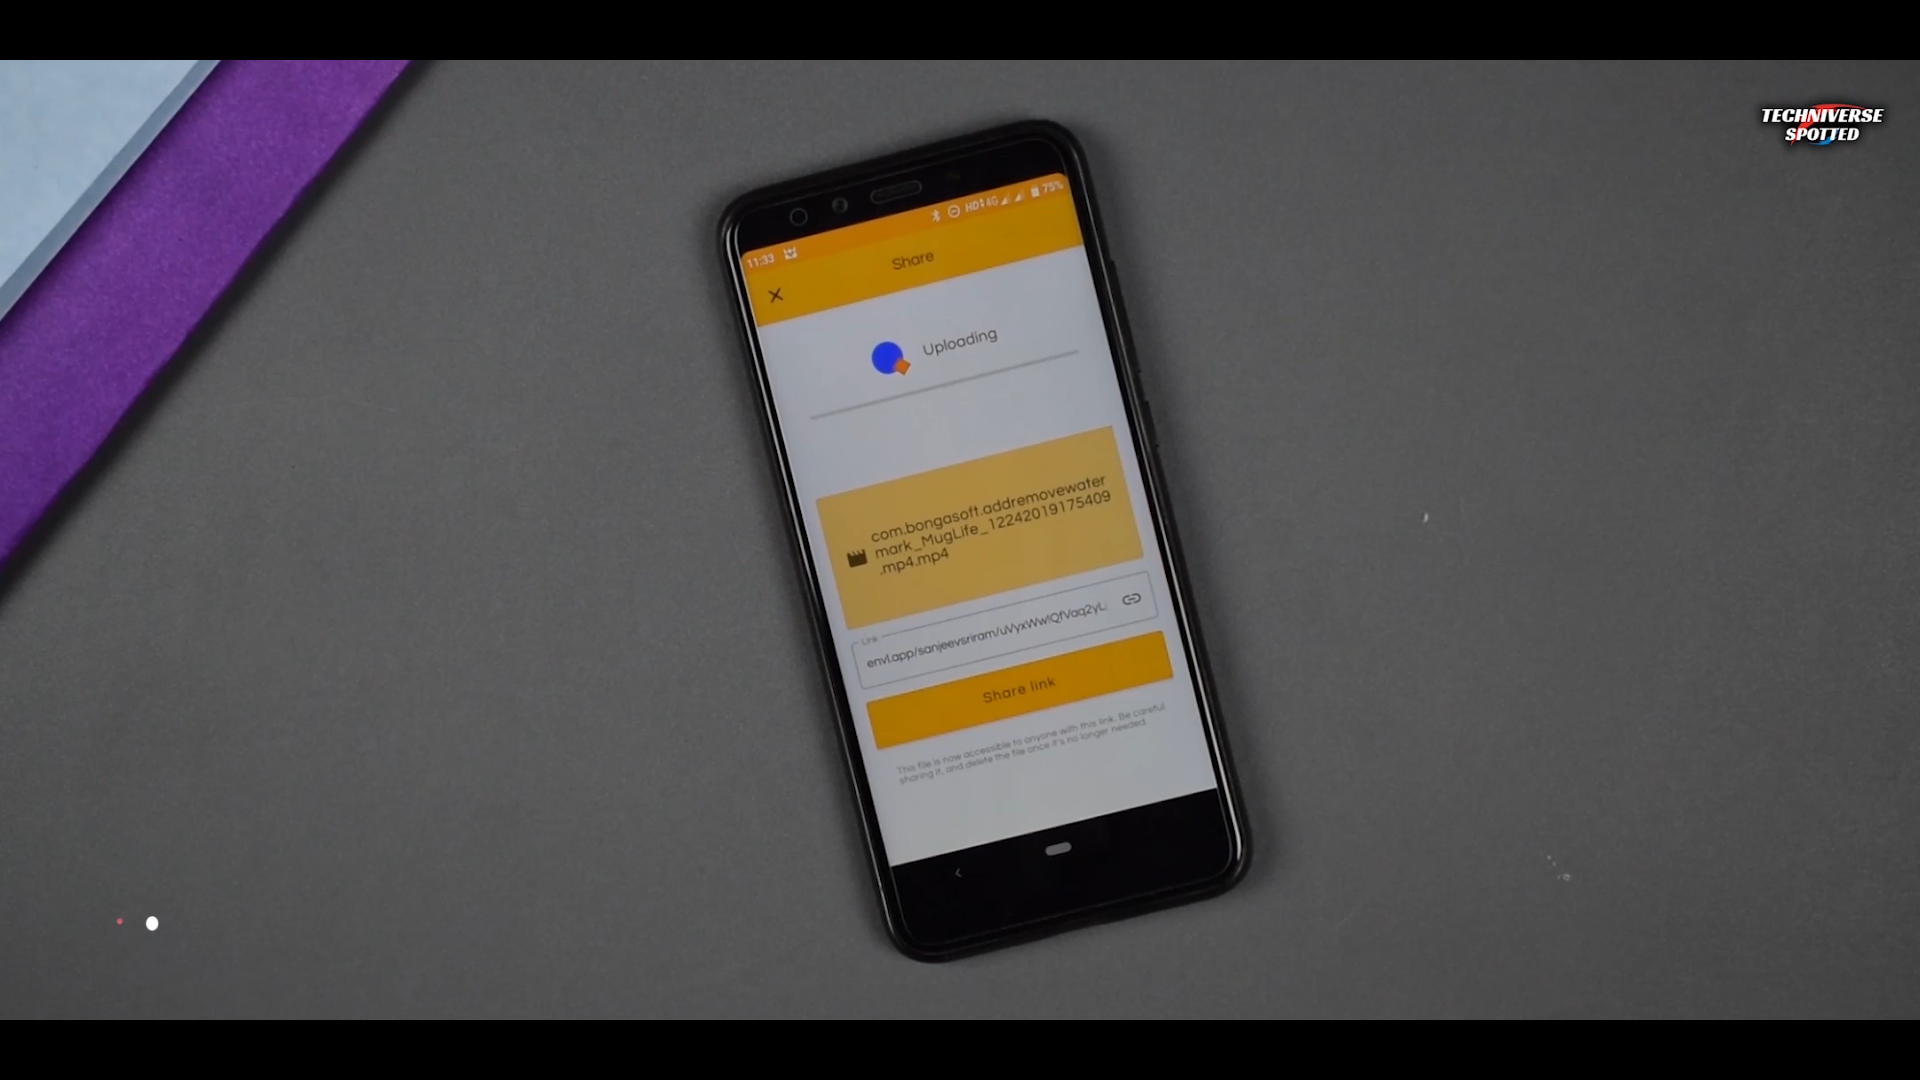 Share Files Securely and Easily With Envelop.